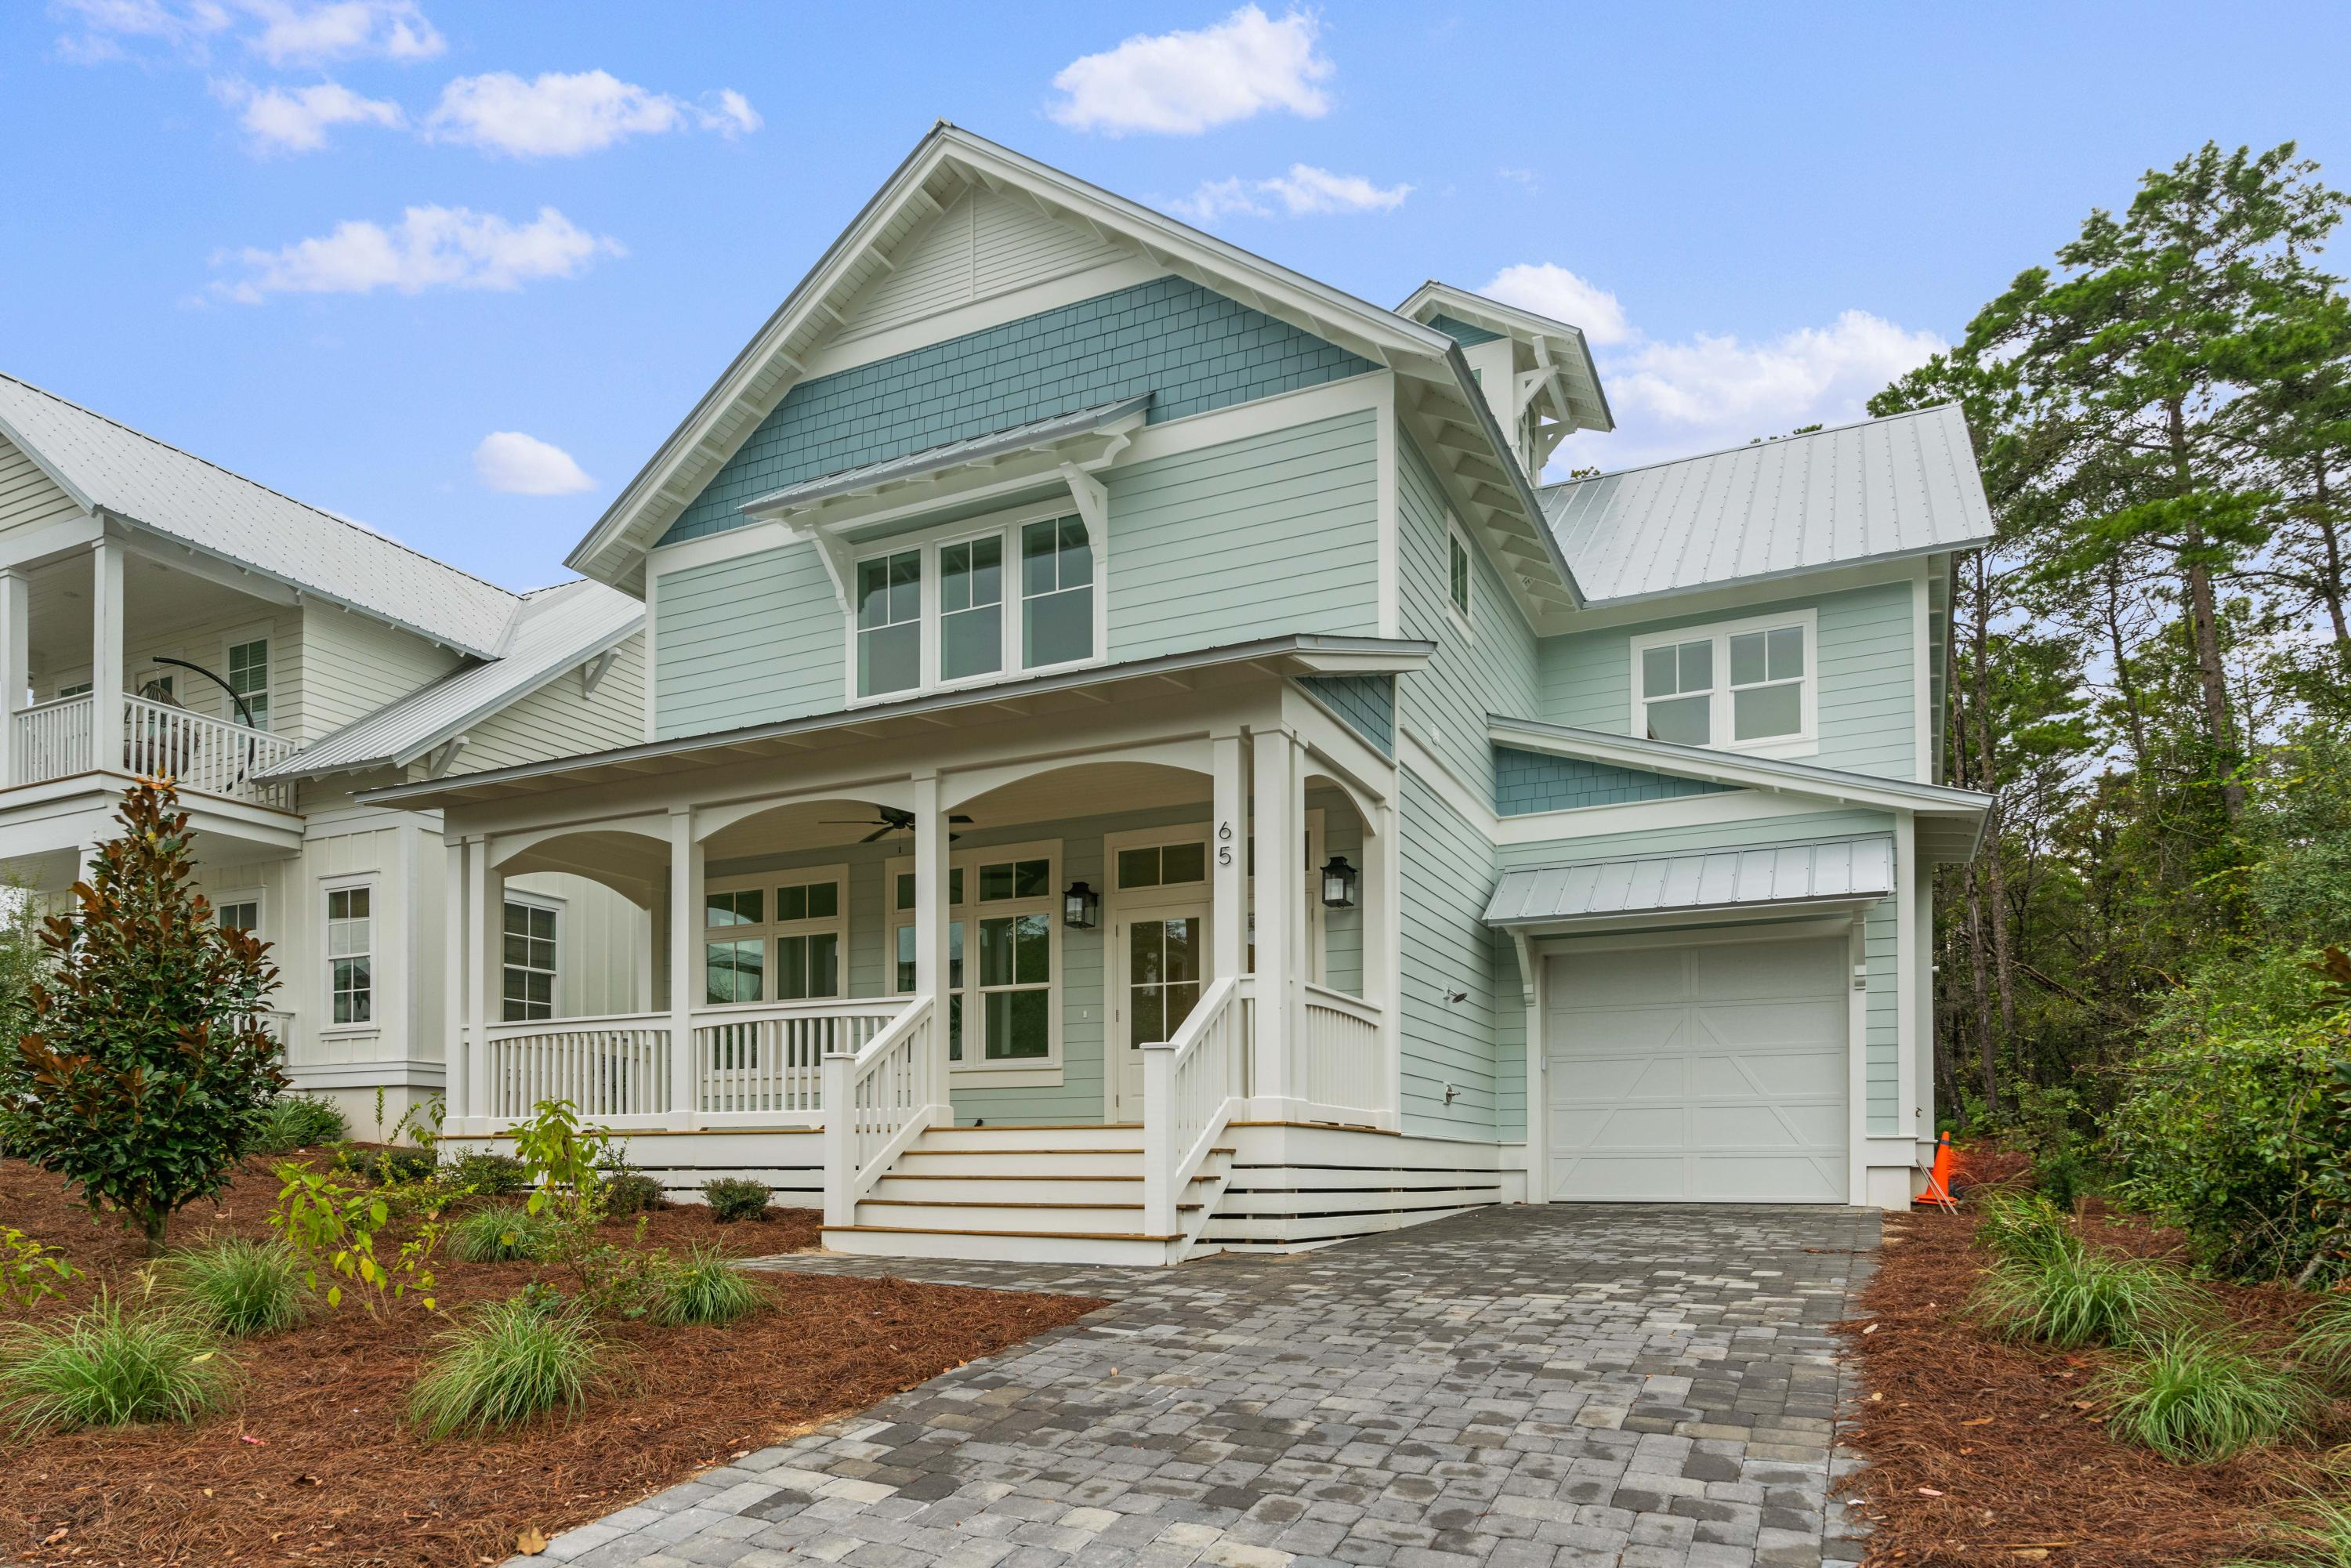 This custom 3,081 sq ft, 4 bed/4.5 bath home with a bunk/bonus space offers many upgrades throughout